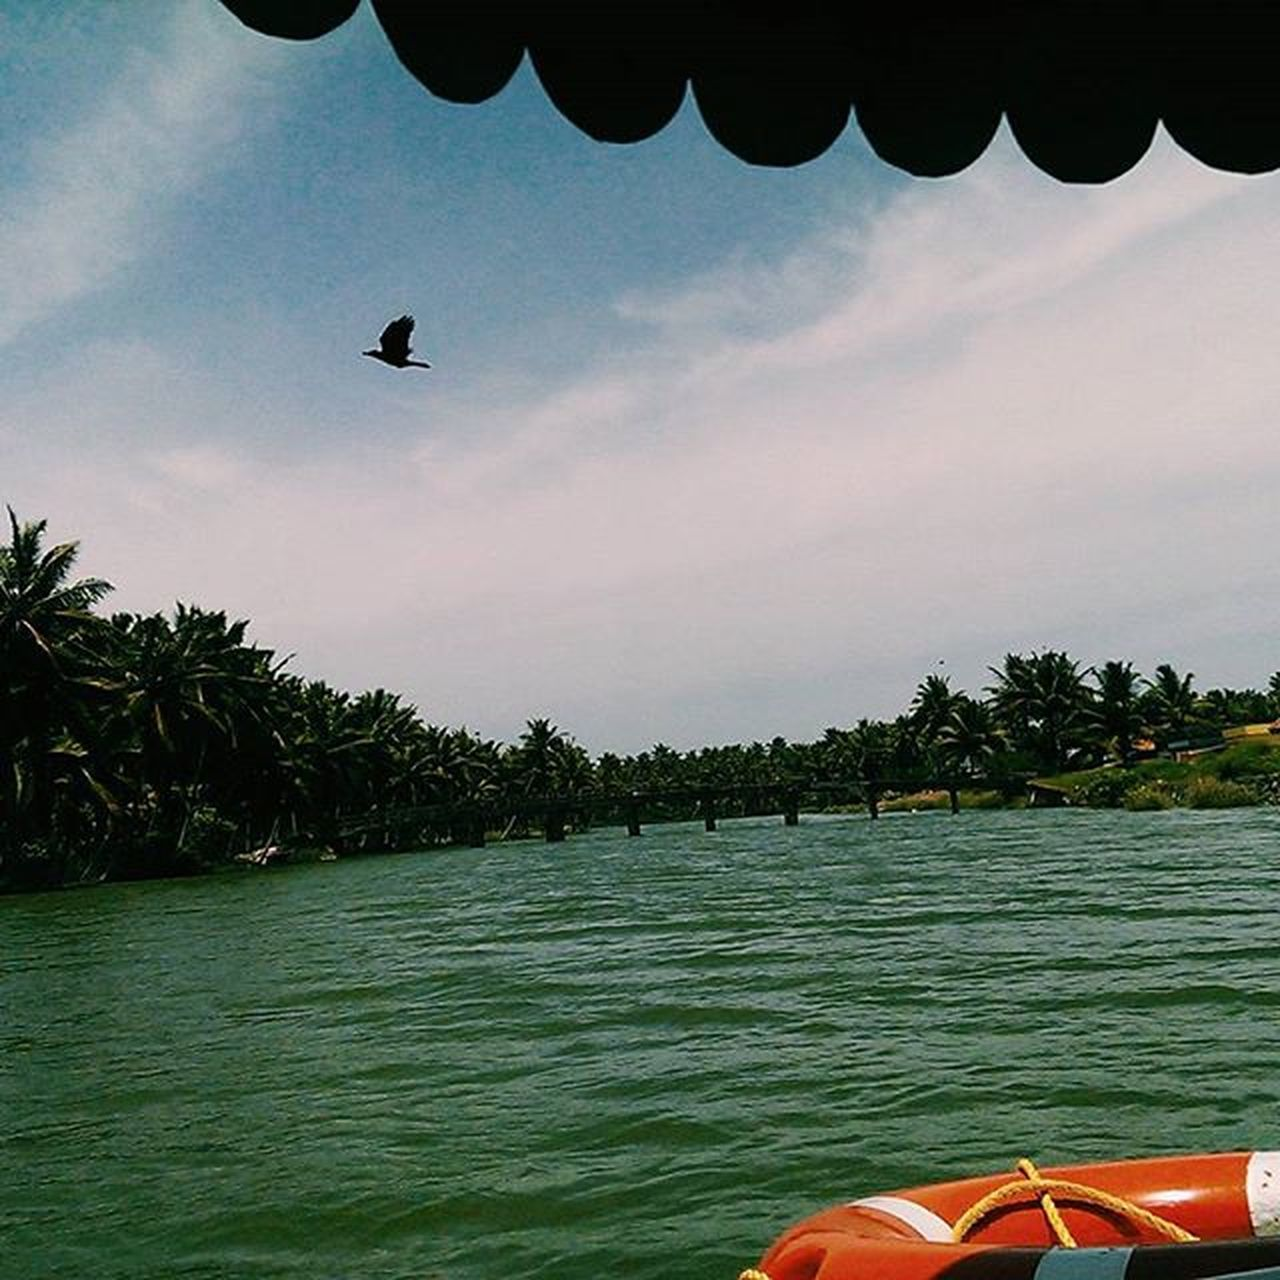 •Laidback-waters• 😜 Vscocam Kerala Poovar Travel godsowncountry backwaters nature landscape incredibleindiaofficial indiapictures. photography photo photos picture pictures snapshot art beautiful instagood picoftheday photooftheday color all_shots exposure composition focus capture moment desi desidiaries